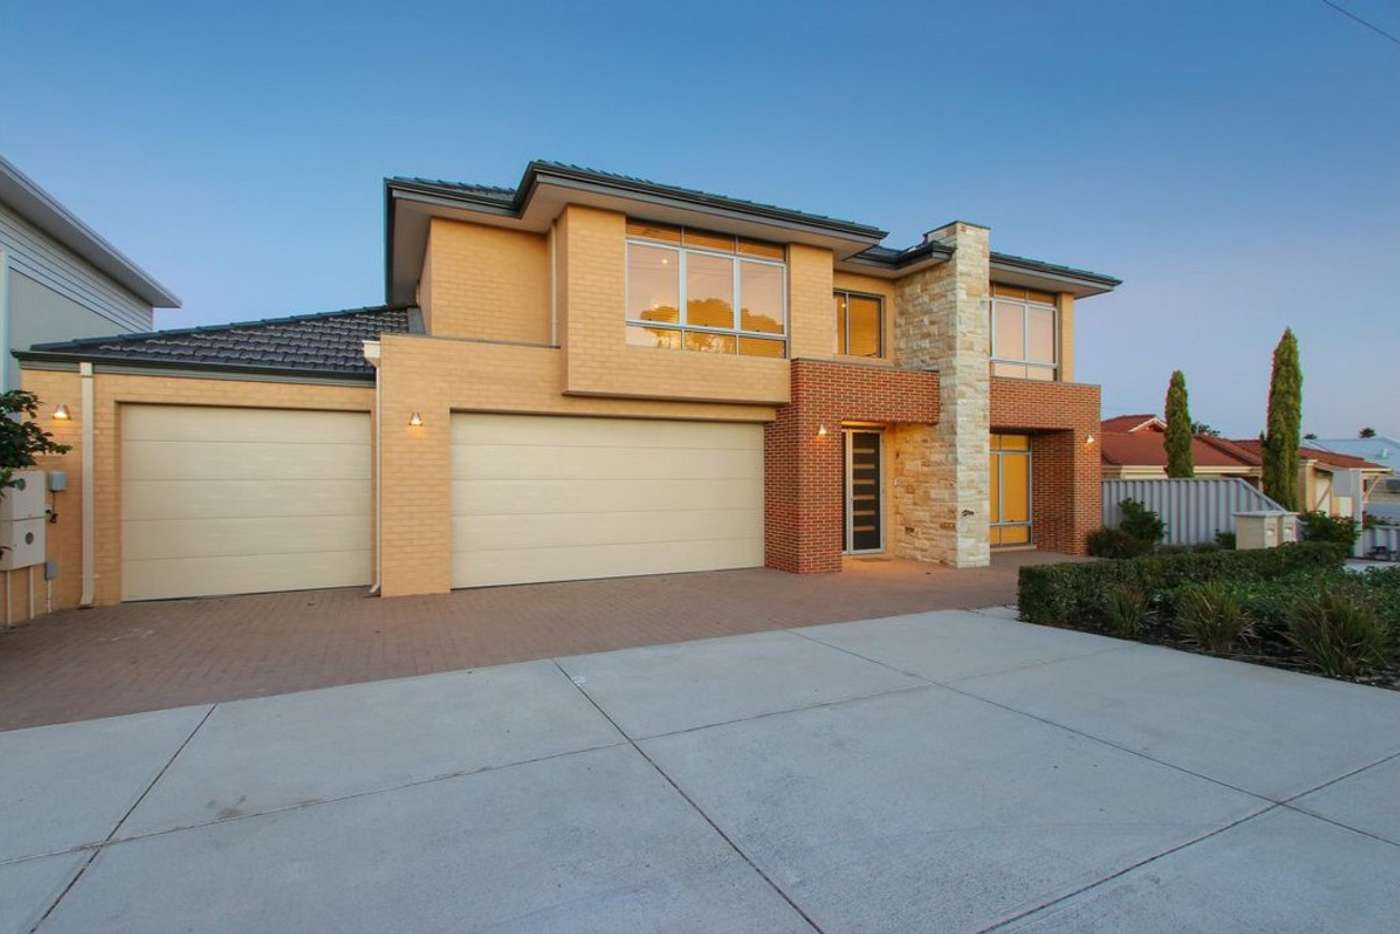 Sixth view of Homely house listing, 16 Hewton Street, Morley WA 6062